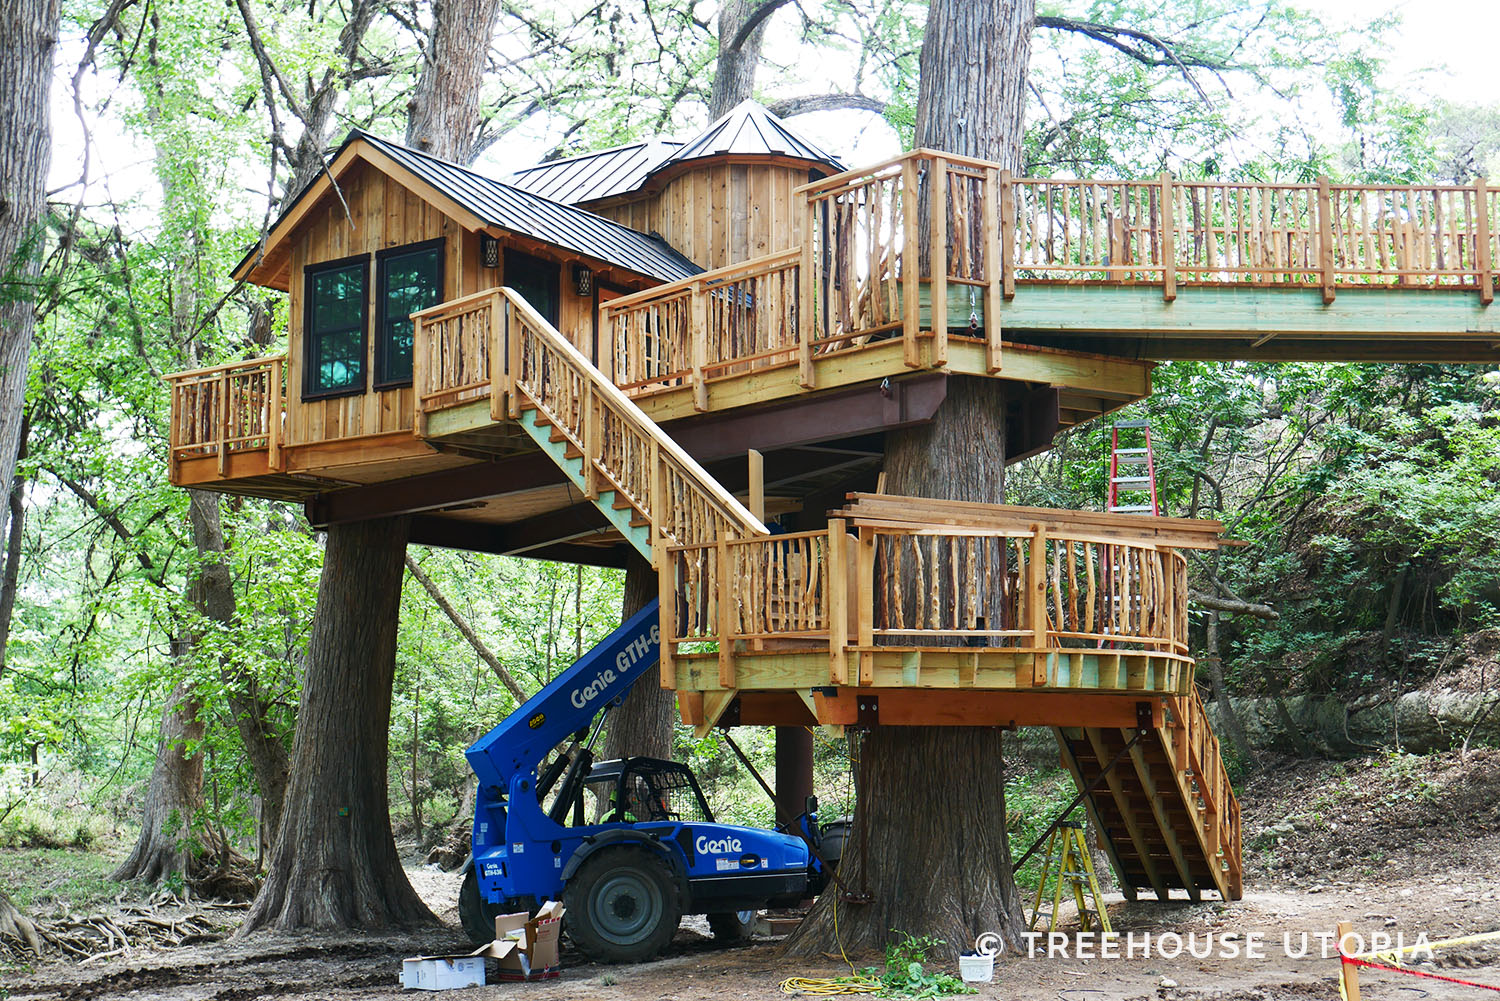 Chateau in progress at Treehouse Utopia